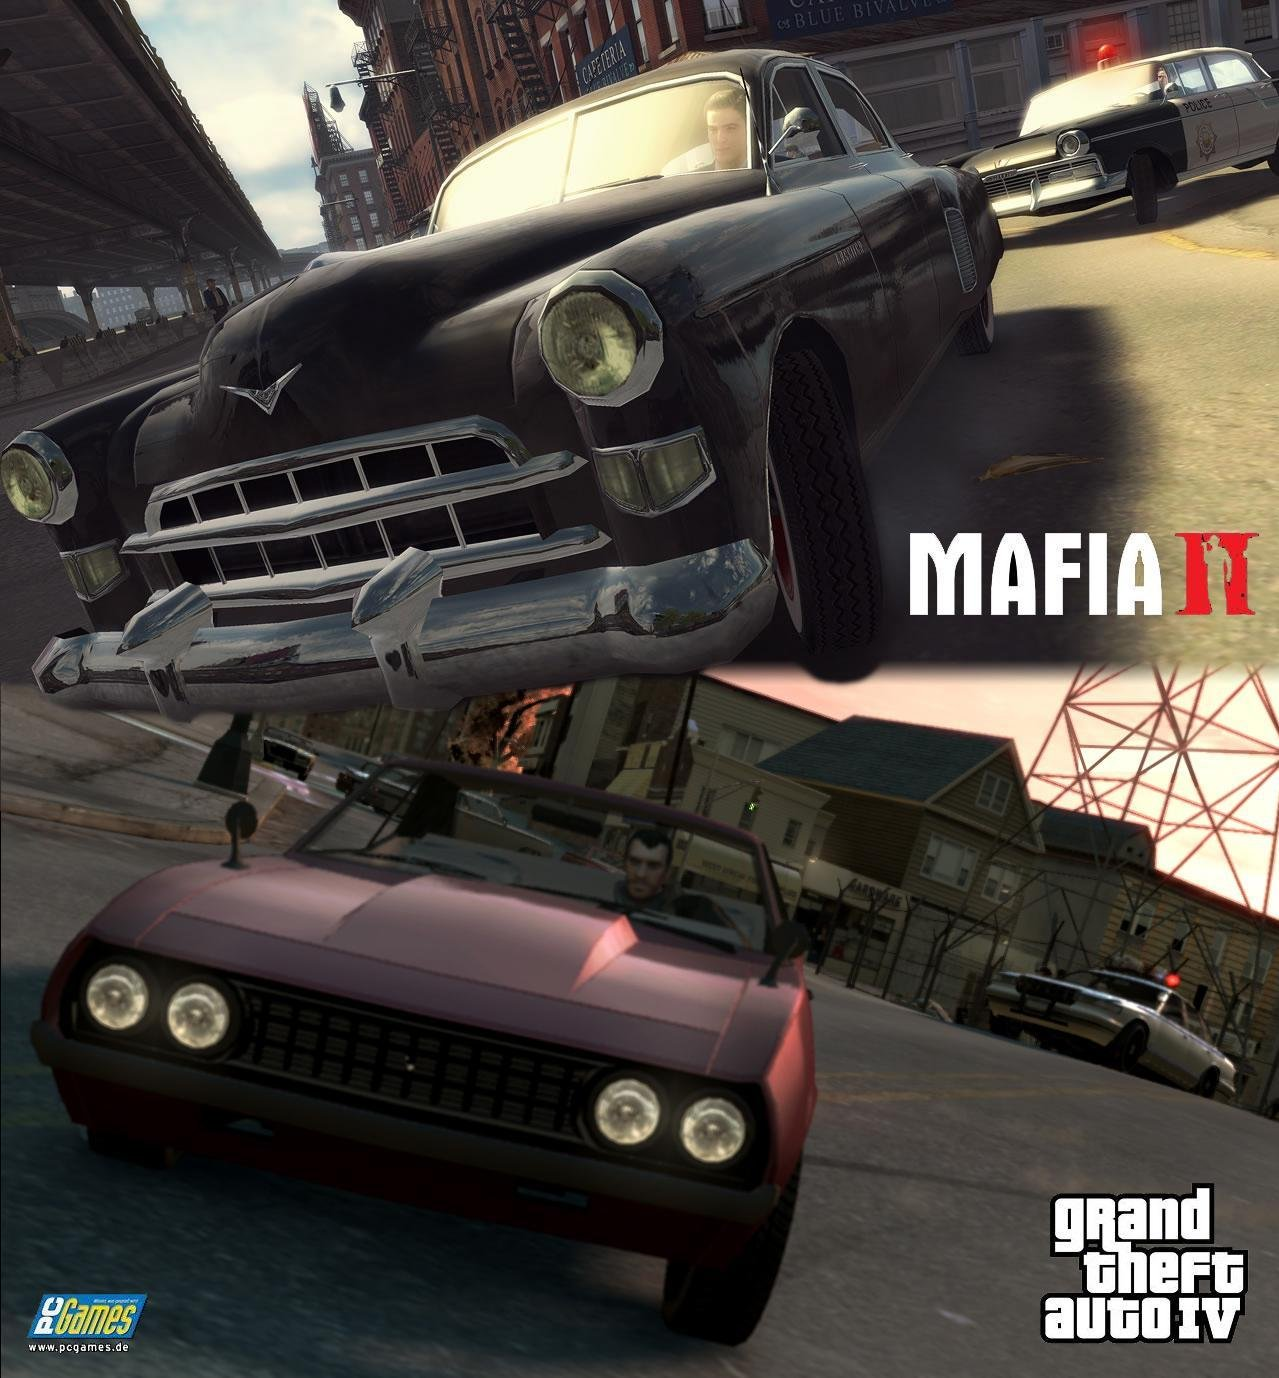 mafia 2 vs gta 4 graphics comparison system wars gamespot. Black Bedroom Furniture Sets. Home Design Ideas